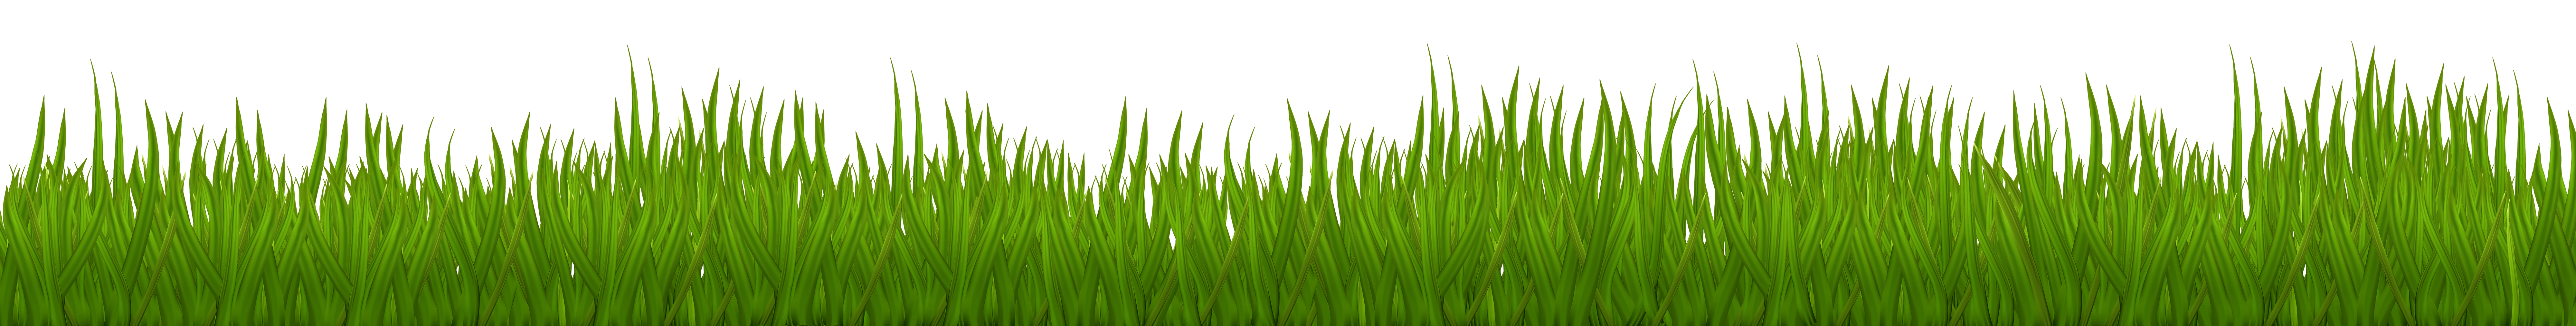 Sun and grass clipart vector freeuse library Grass PNG Clip Art Image | Clipart and Wallpaper | Pinterest | Art ... vector freeuse library